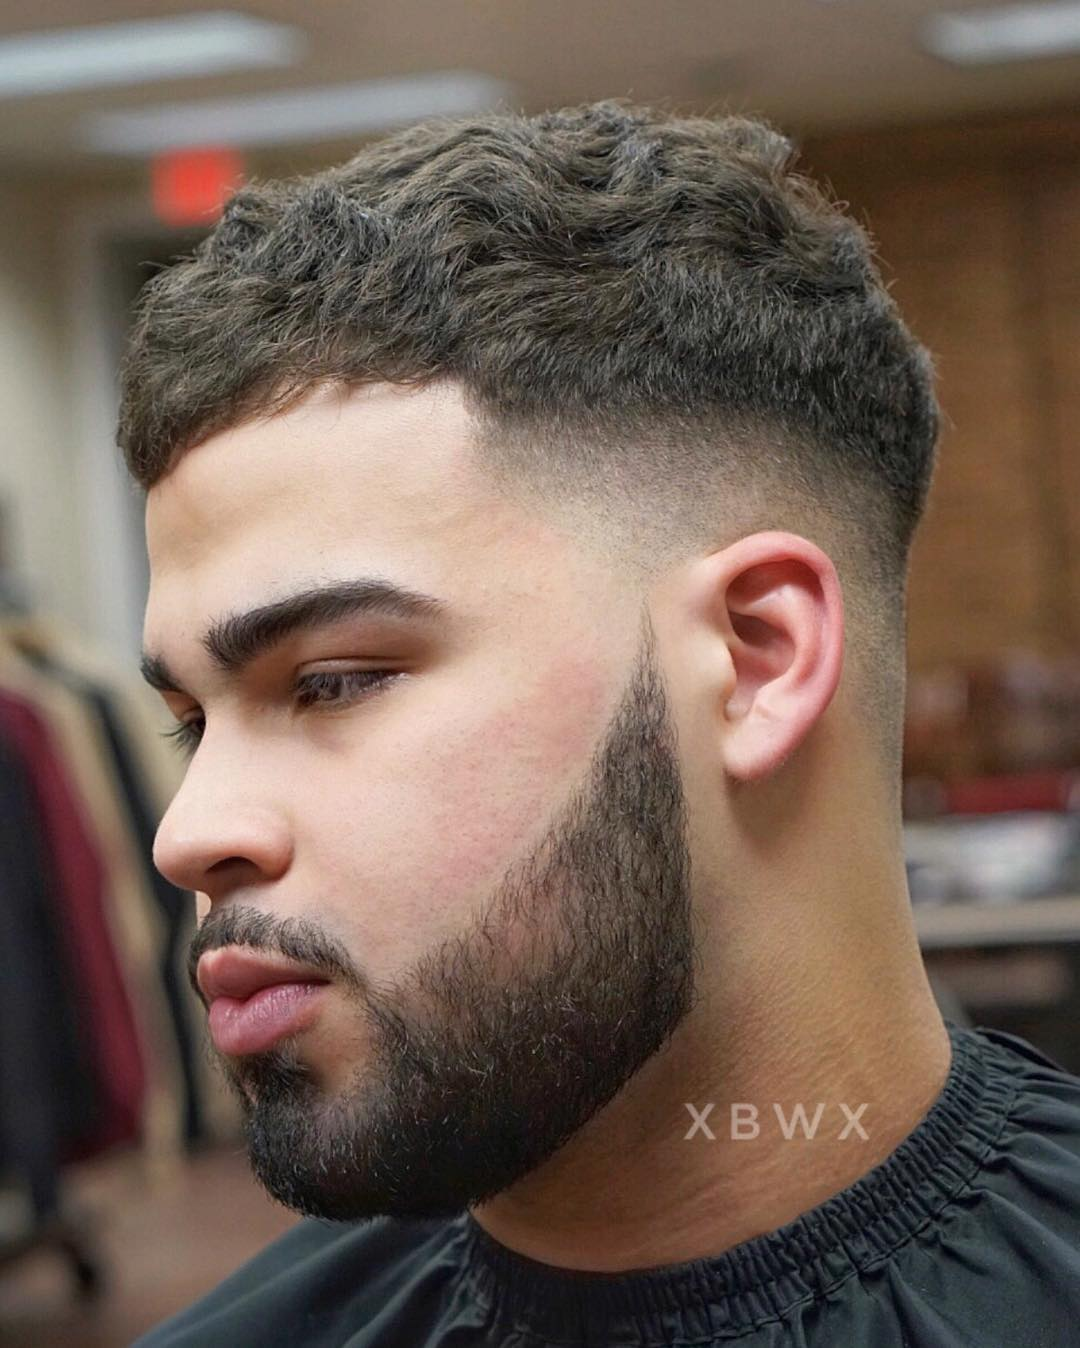 Types Of Fade Haircuts (2020 Update)